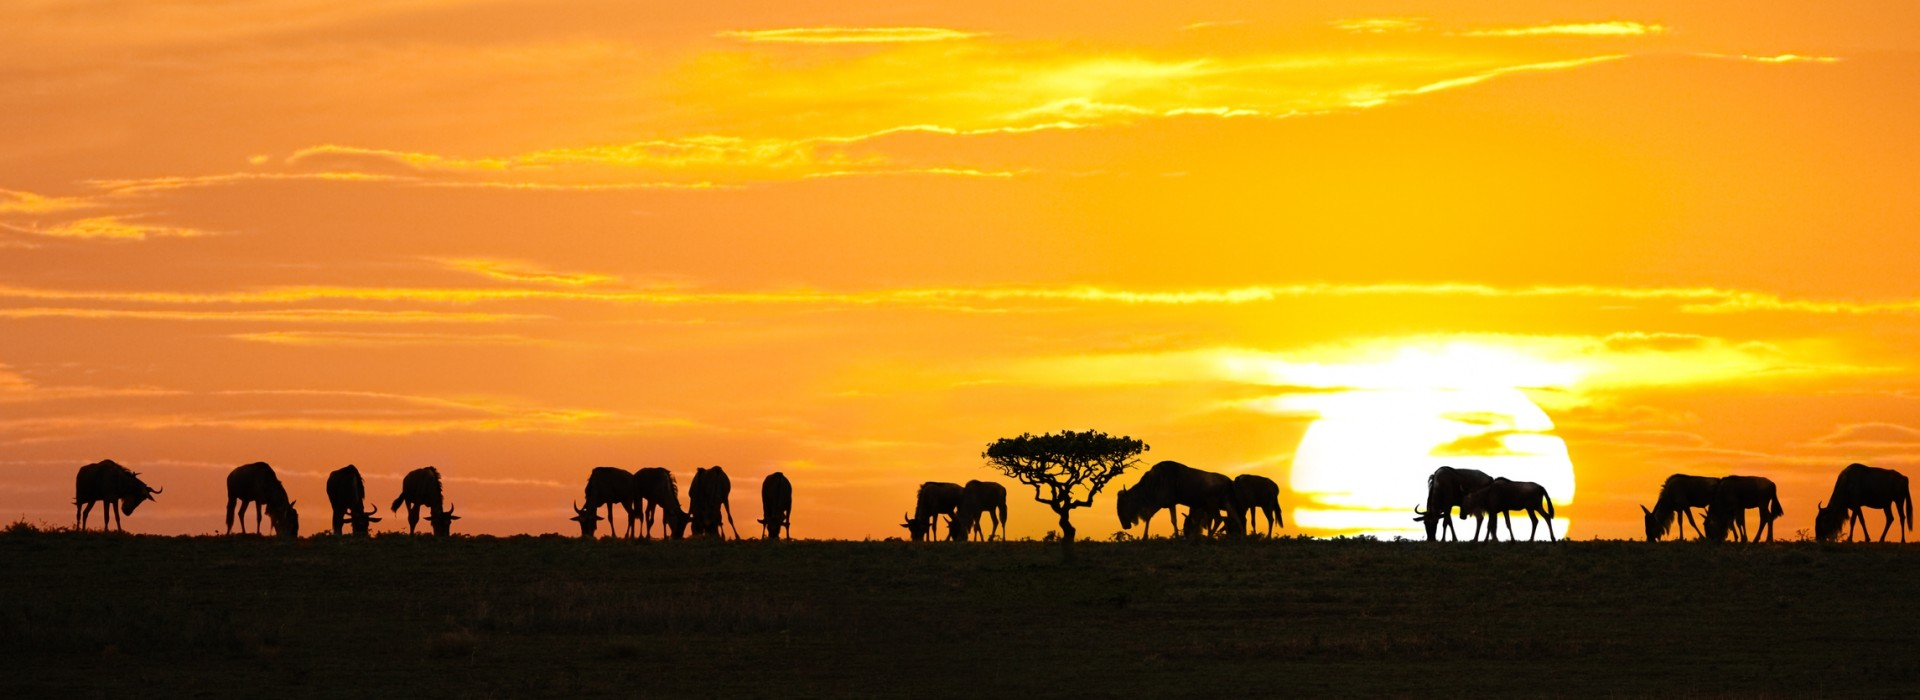 Wildlife, landscapes and nature Tours in Serengeti National Park